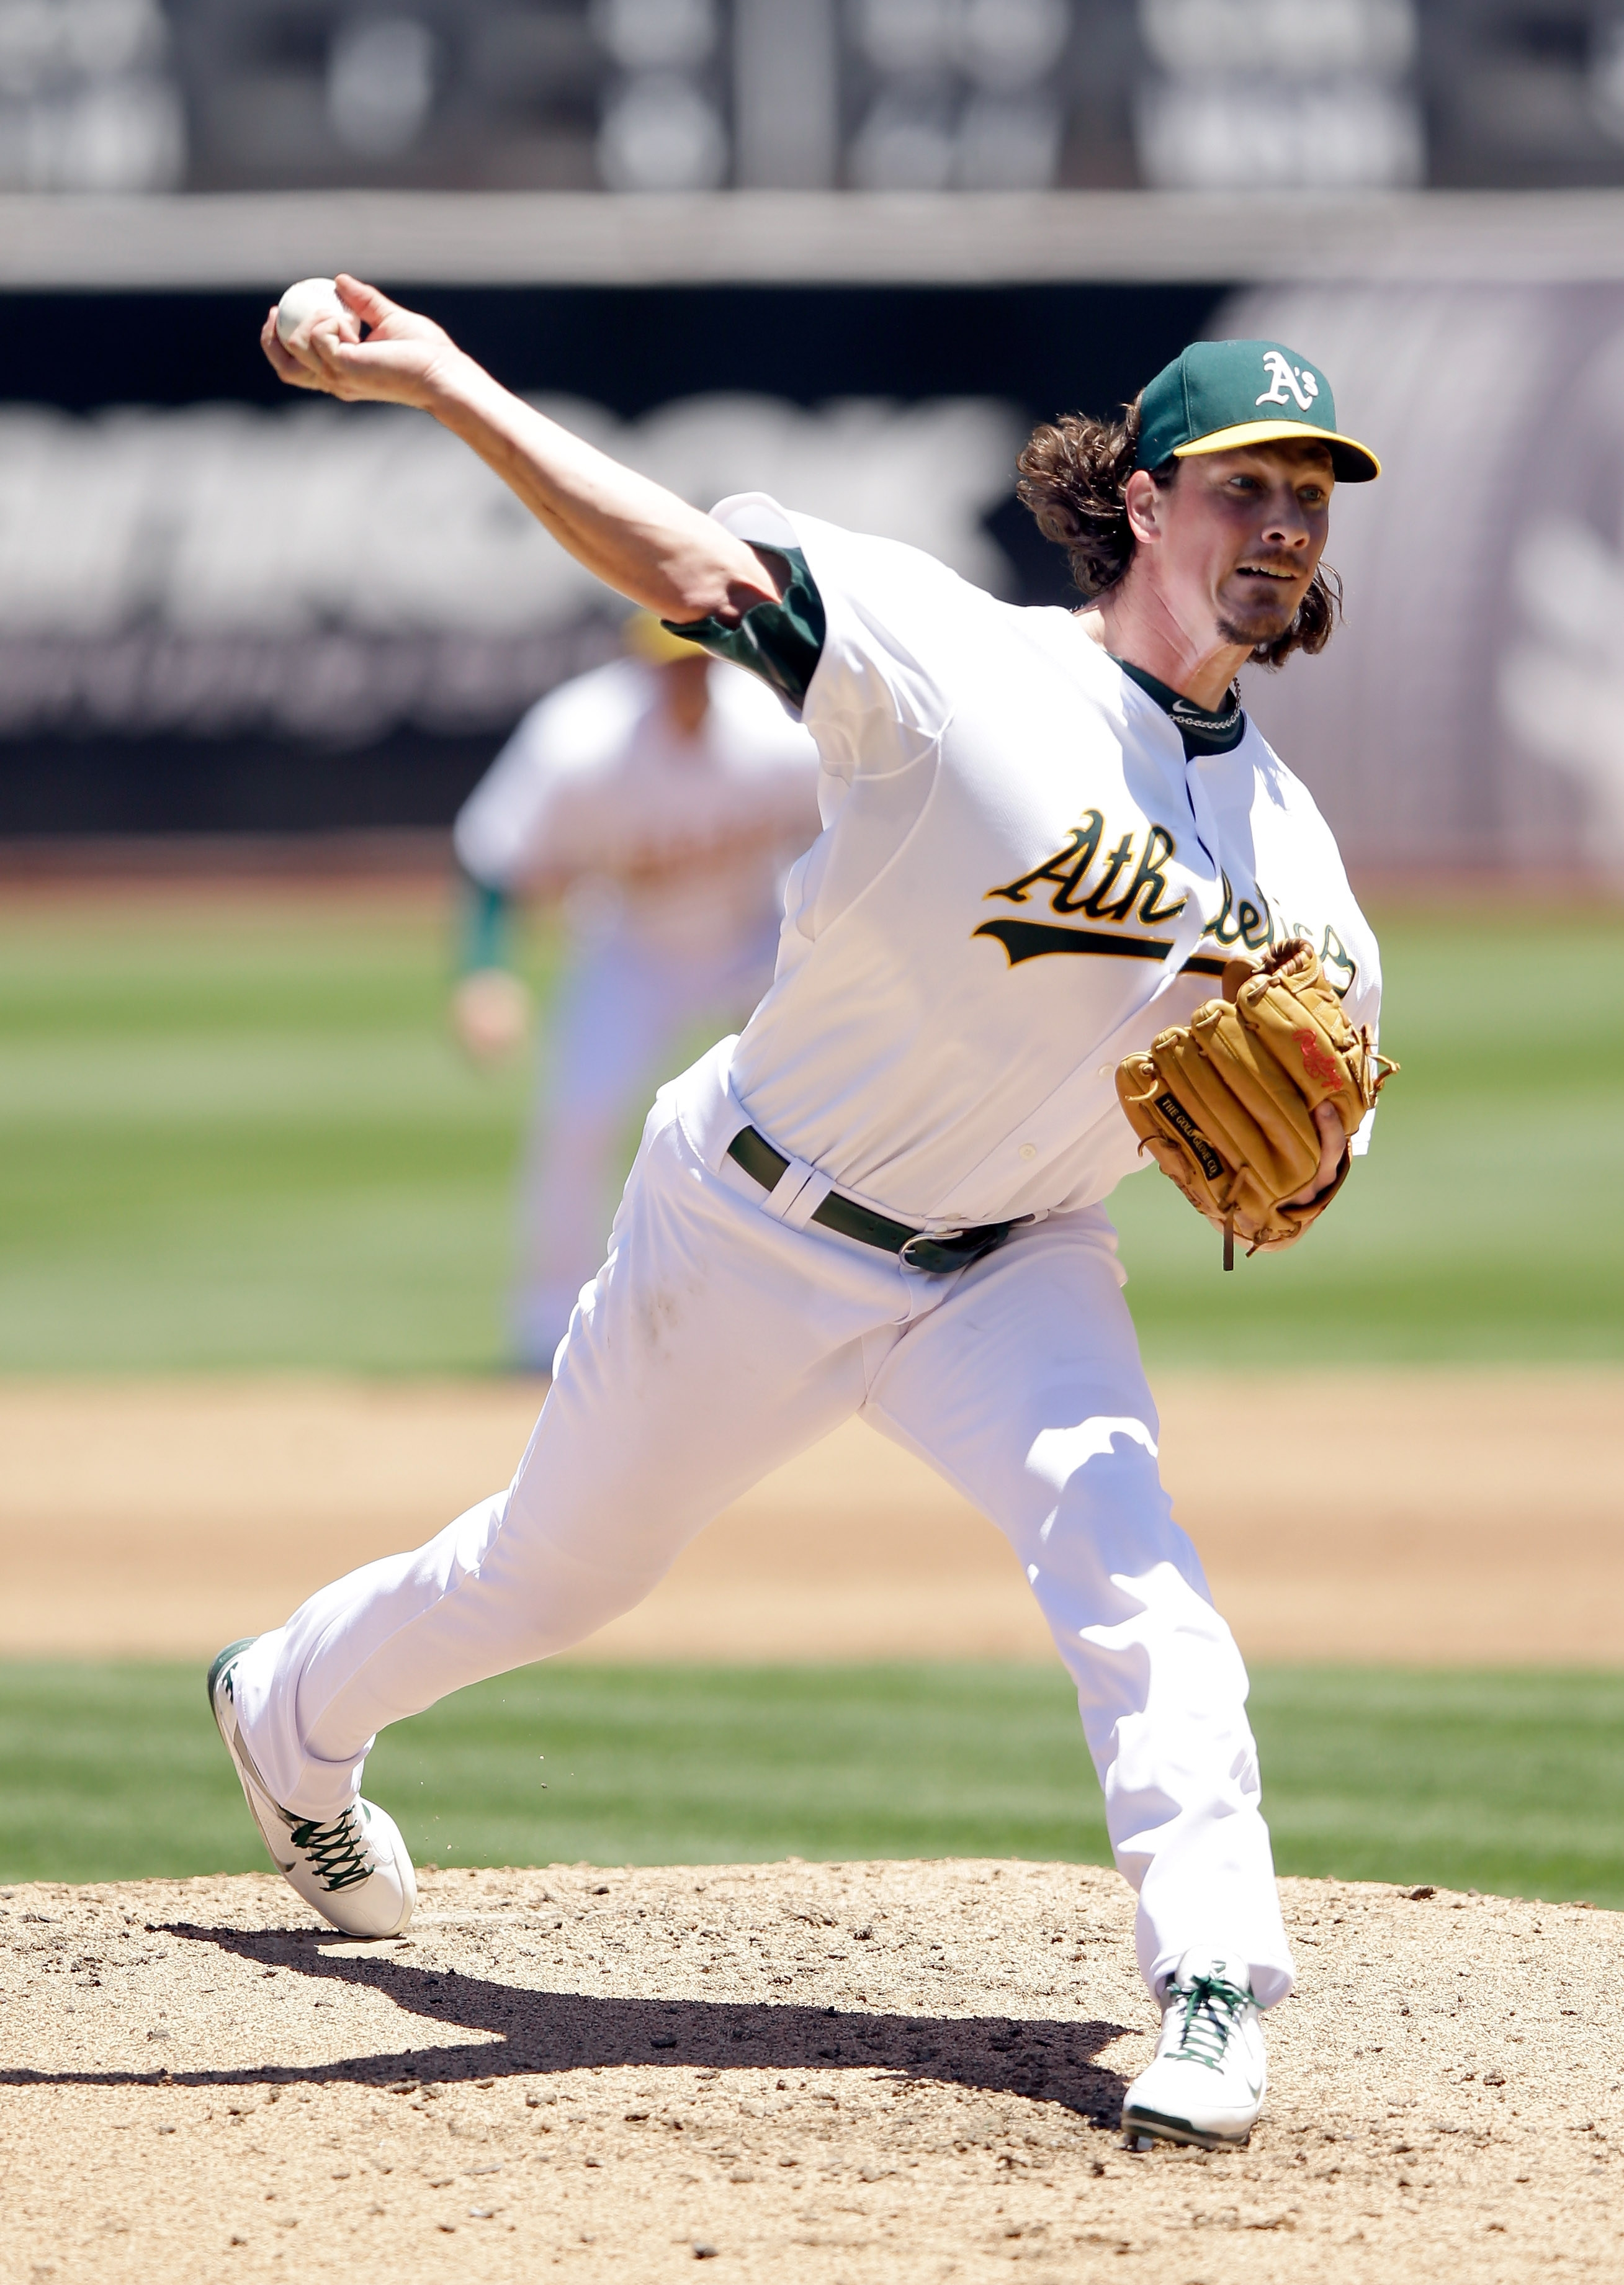 In his debut for Oakland on Sunday, Jeff Samardzija allowed one run in seven innings for a 4-2 victory over Toronto. Samardzija, traded from the Chicago Cubs, was voted to the All-Star Game from the National League.